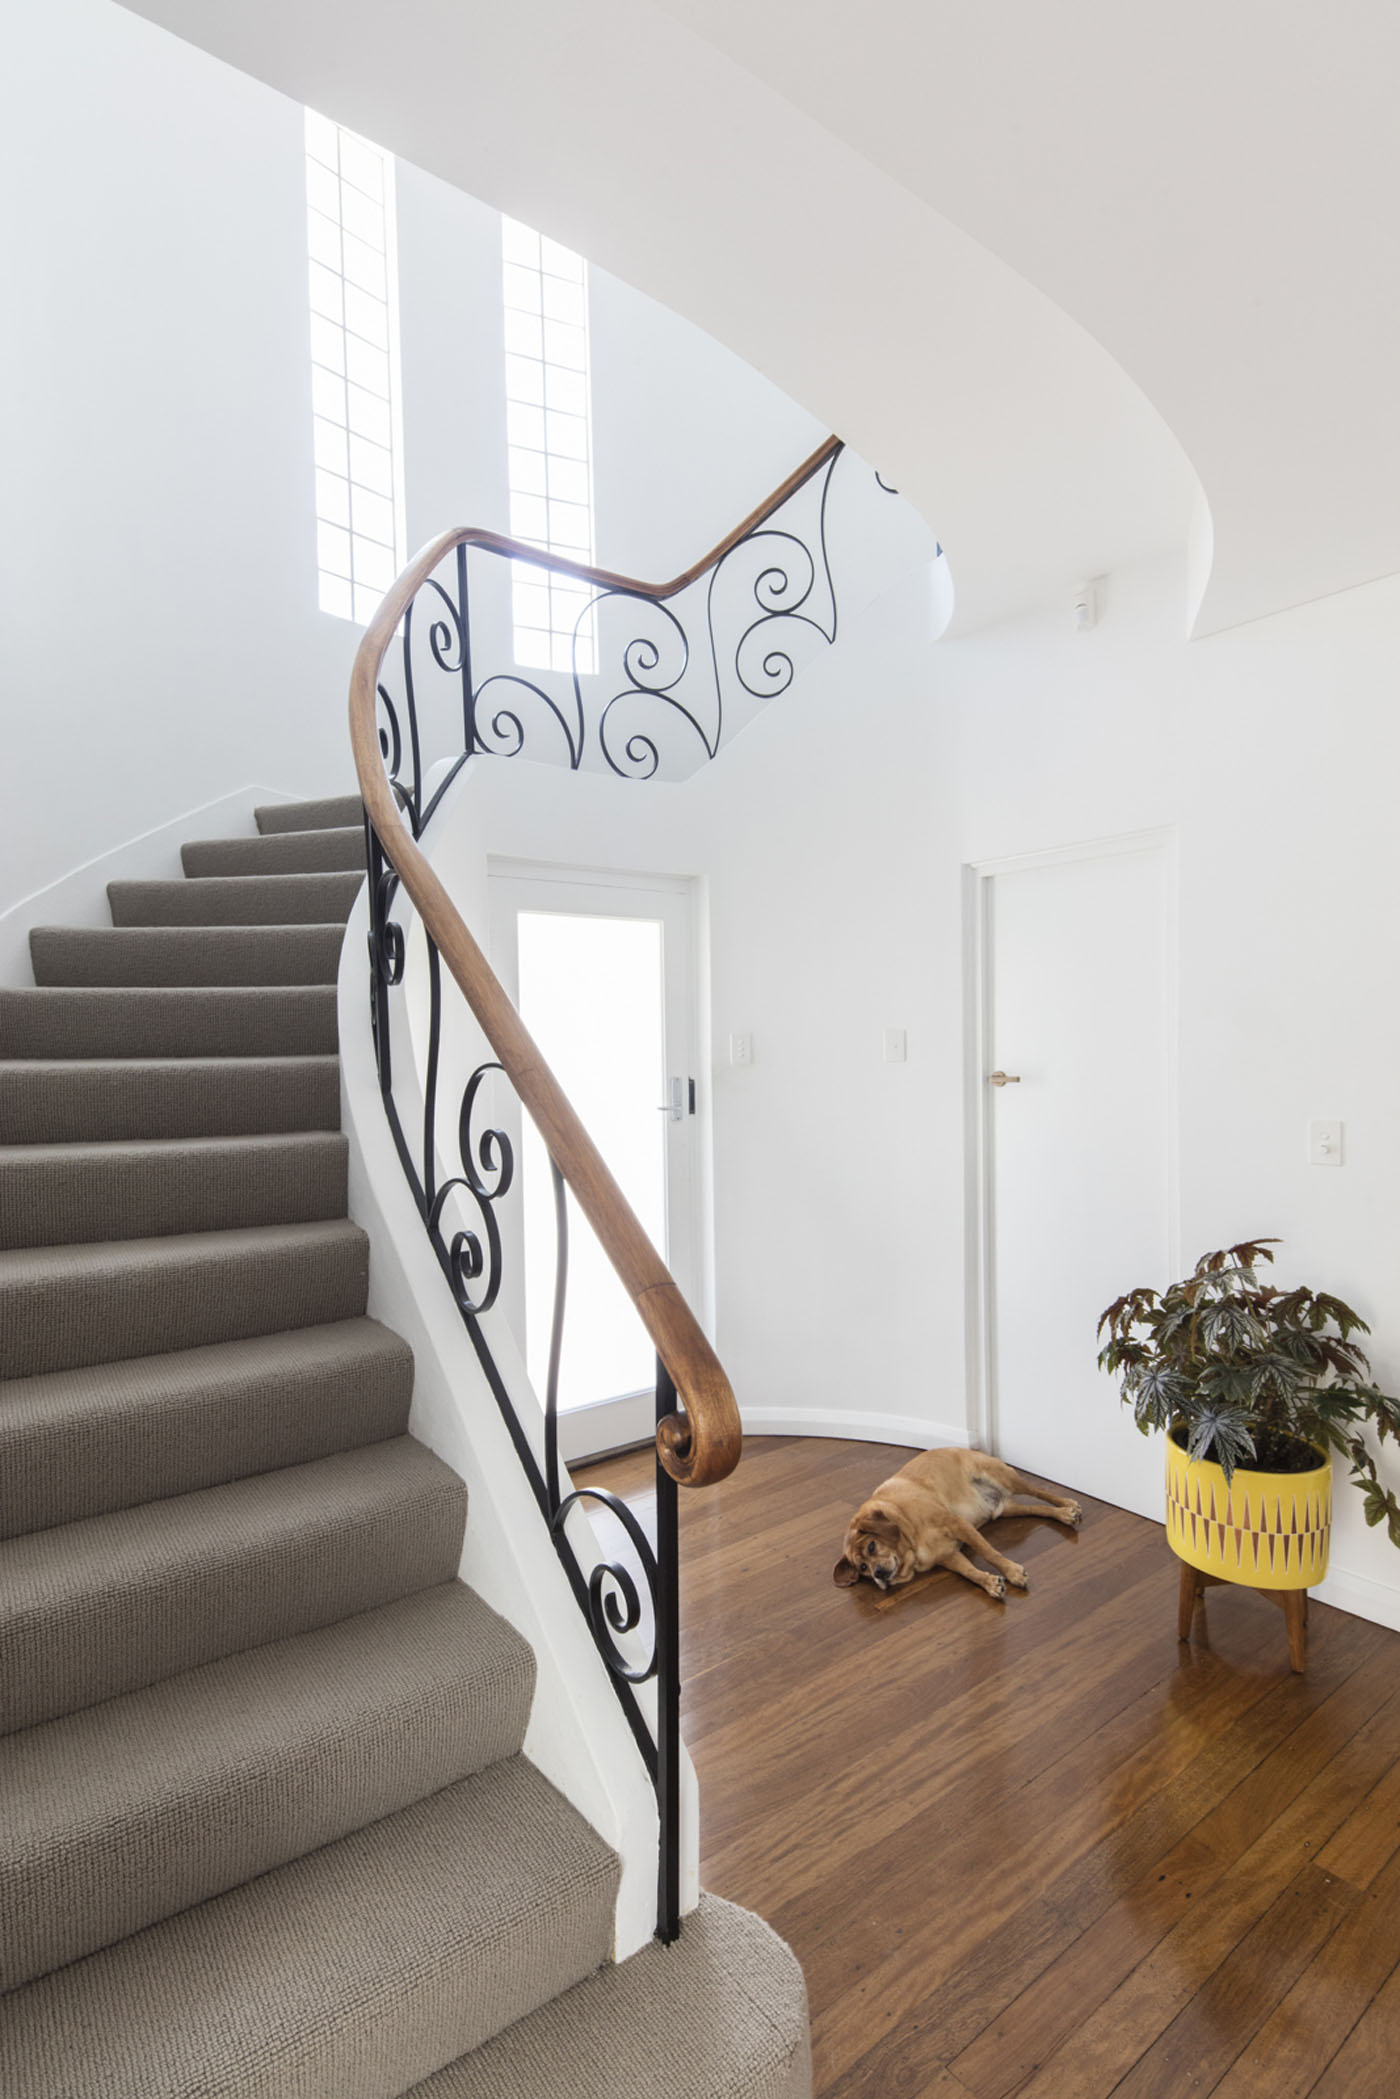 Conway Atkins House in Dover Heights by Sydney architect Sam Crawford Architect. The existing stairwell has been retained and refurbished.